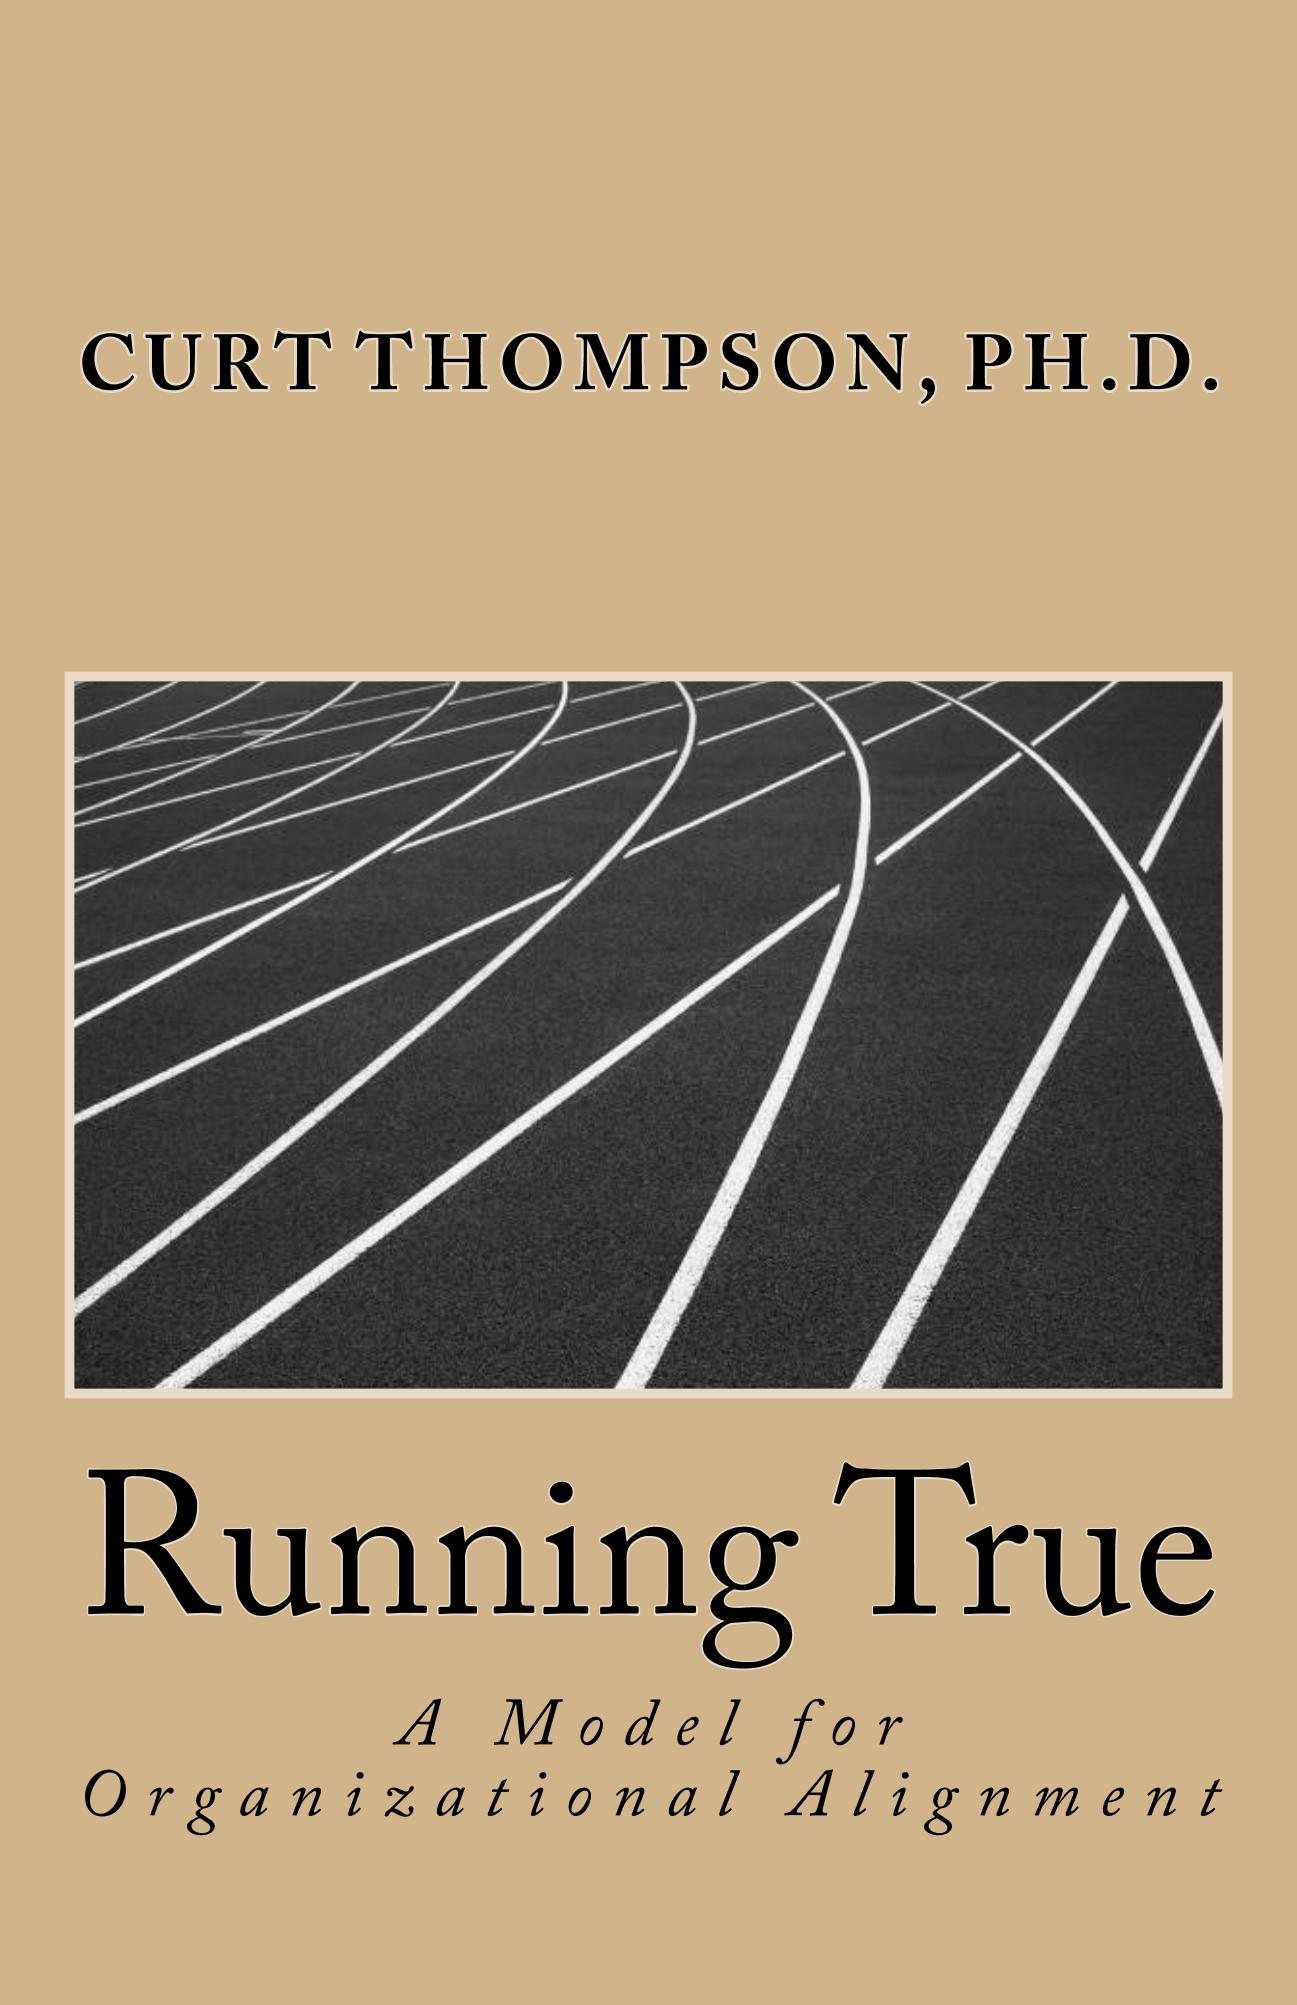 Click Here for Running True